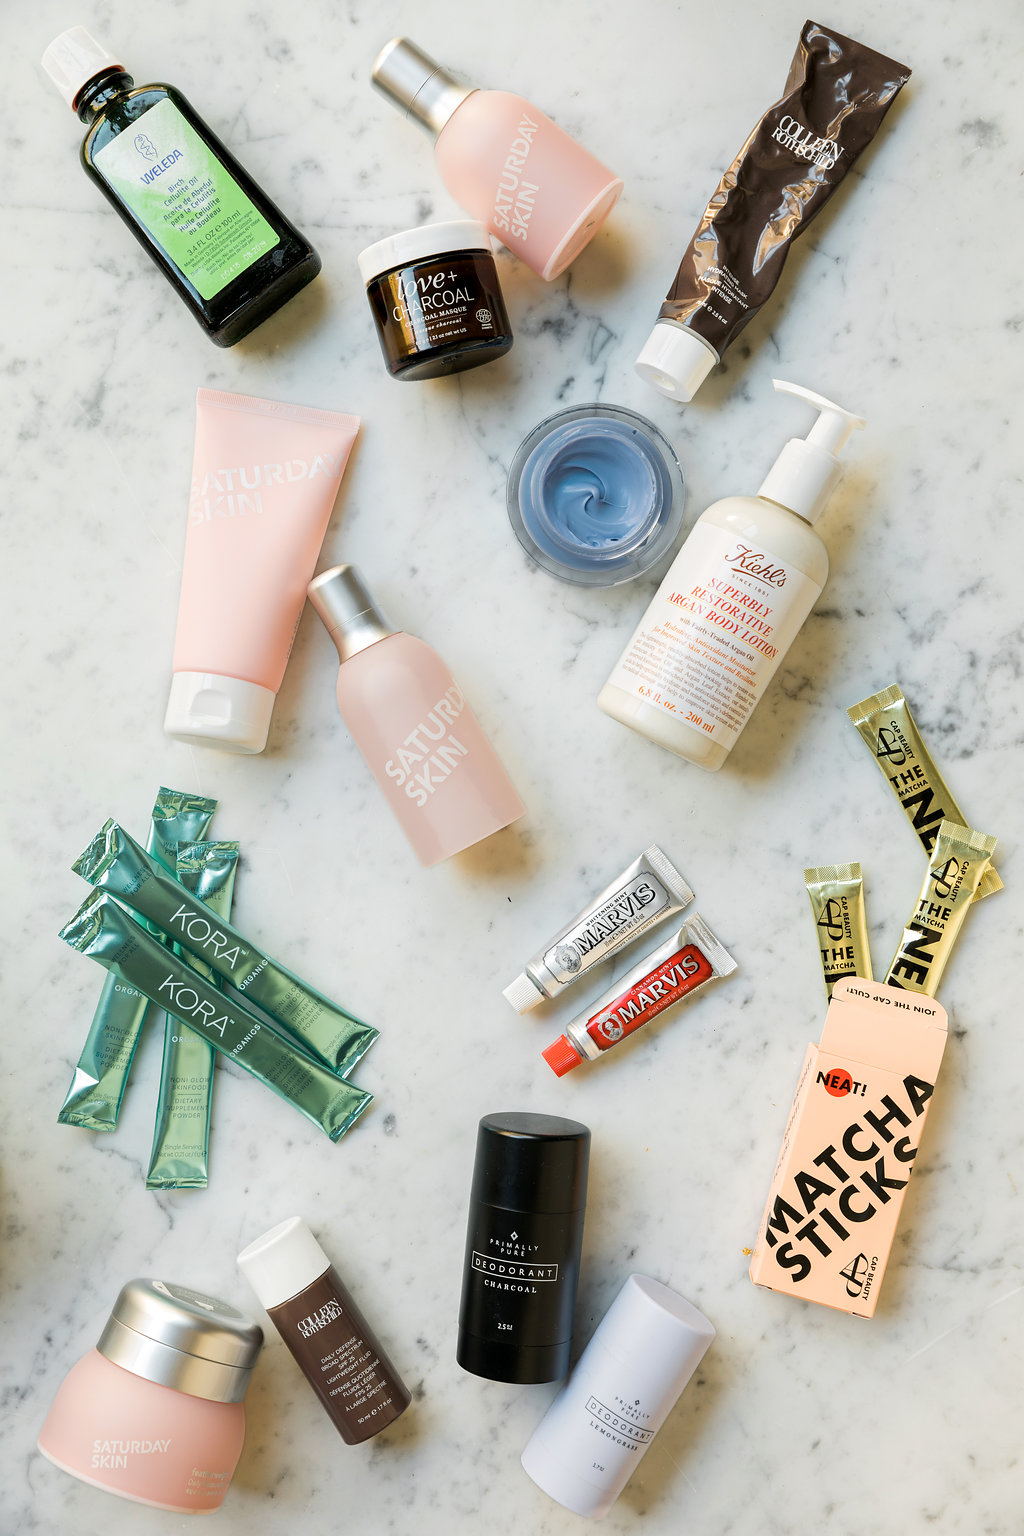 Saturday Skin, Primally Pure and more nontoxic favorites | Waiting on Martha